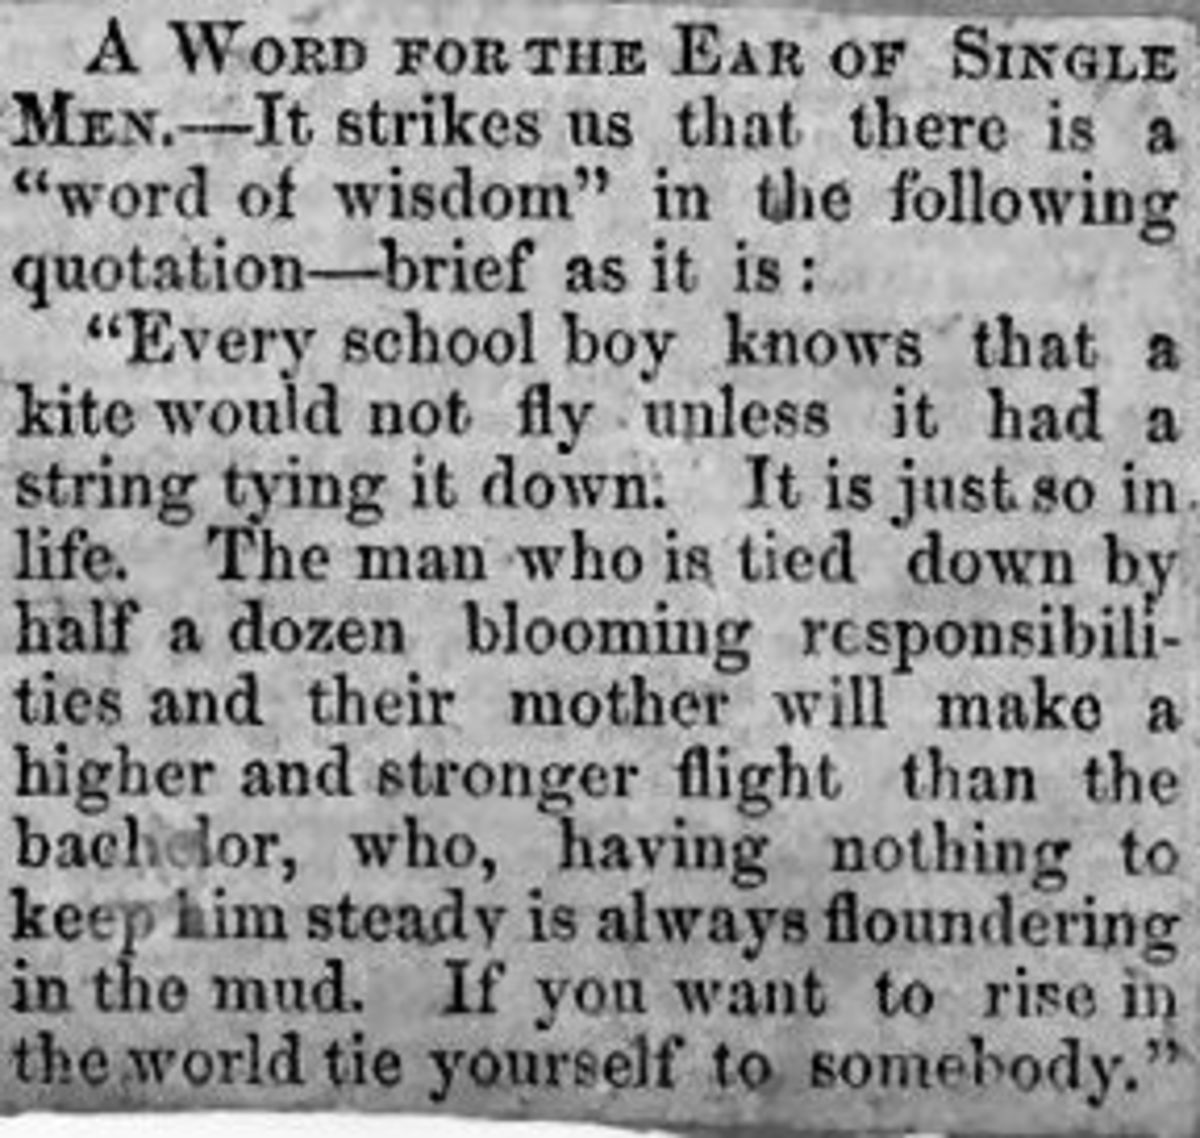 A word of wisdom for single men